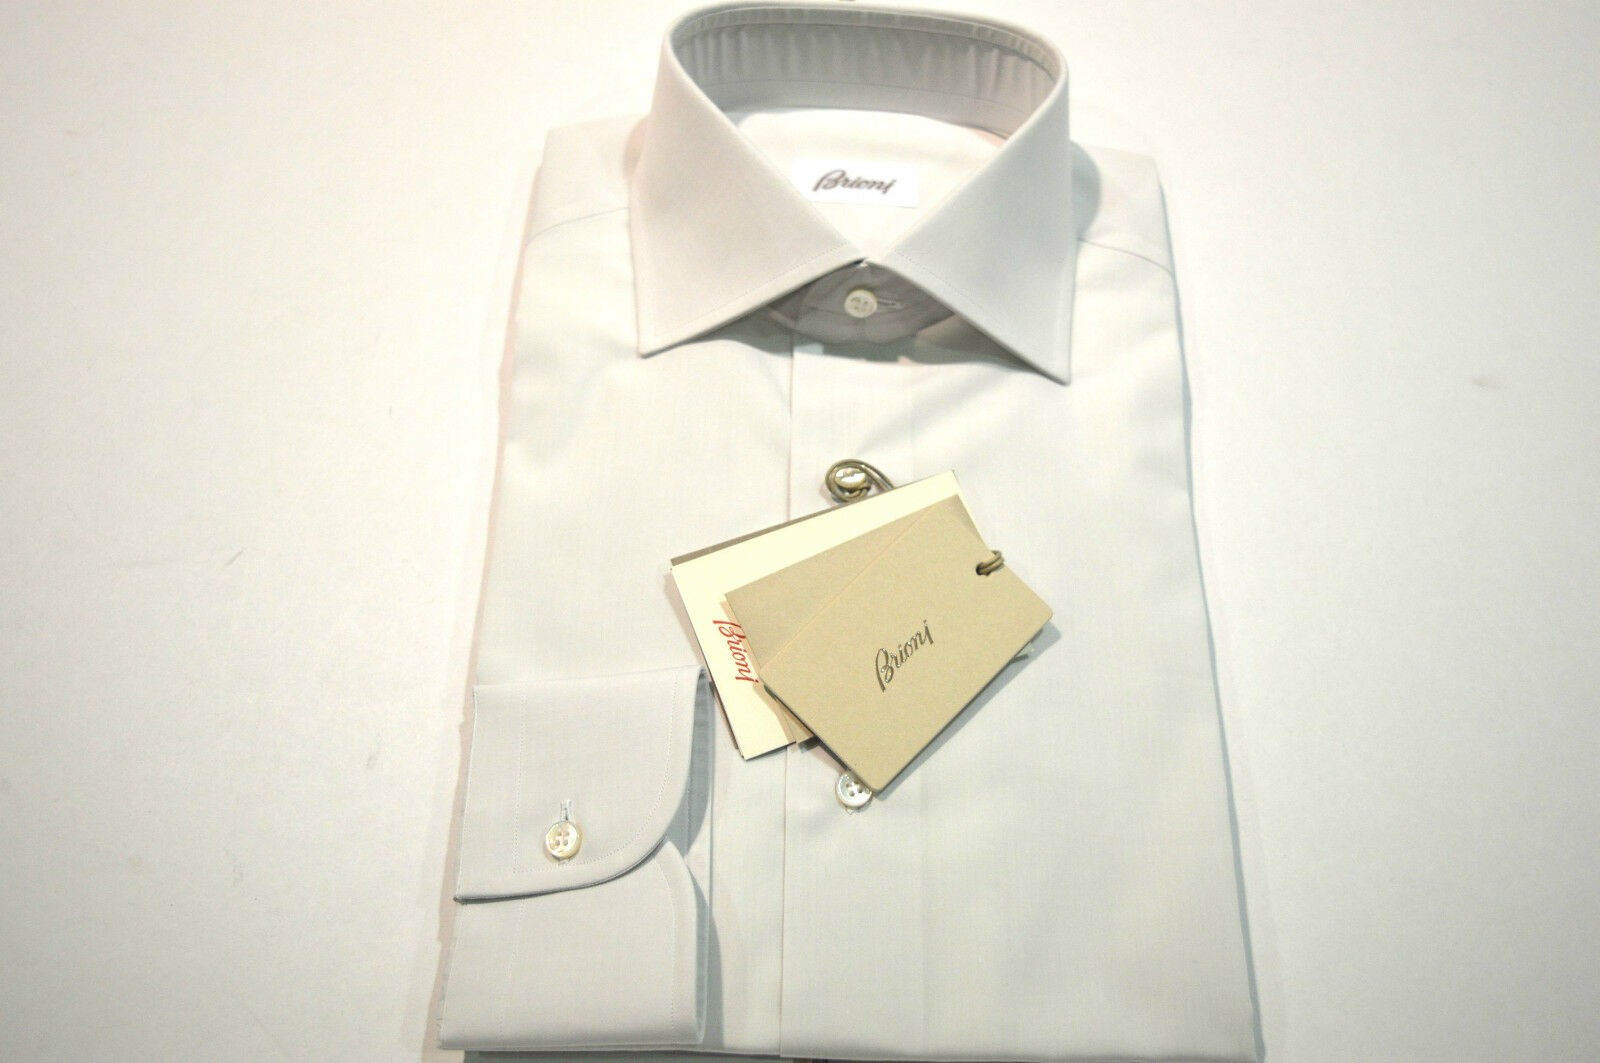 NEW  BRIONI Dress SHIRT 100% Cotton Size 17.75 Us 45  Eu White (Store Code FE6)